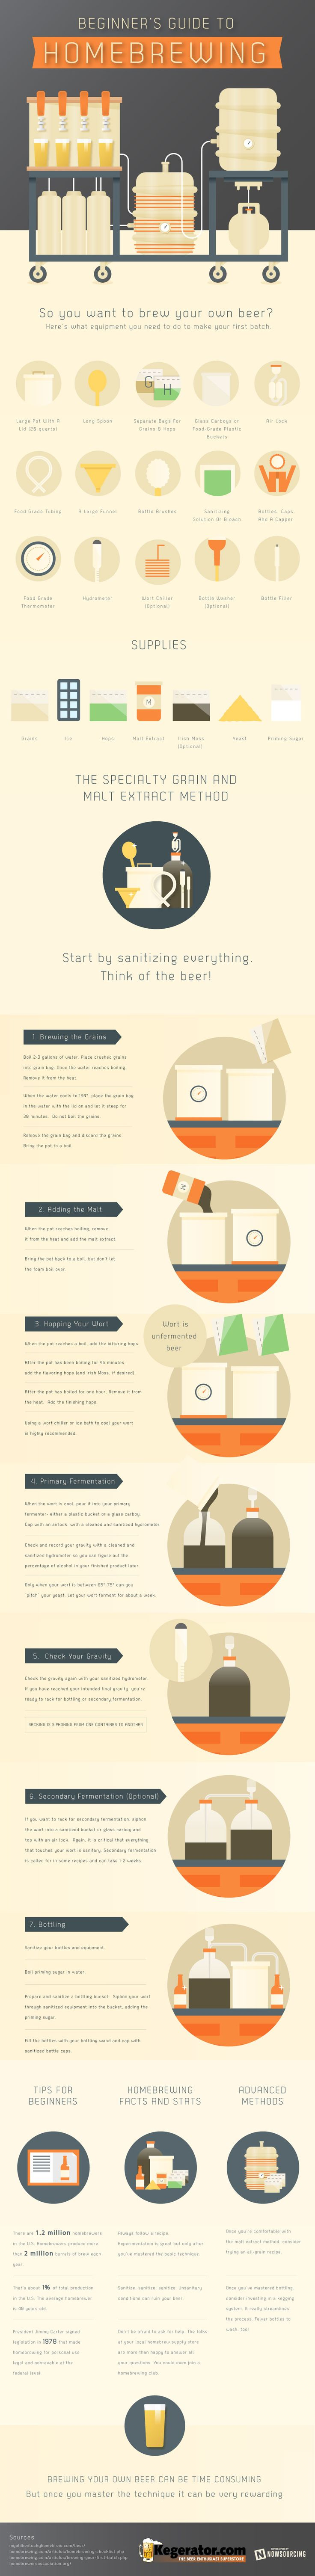 A Beginner's Guide to Homebrewing